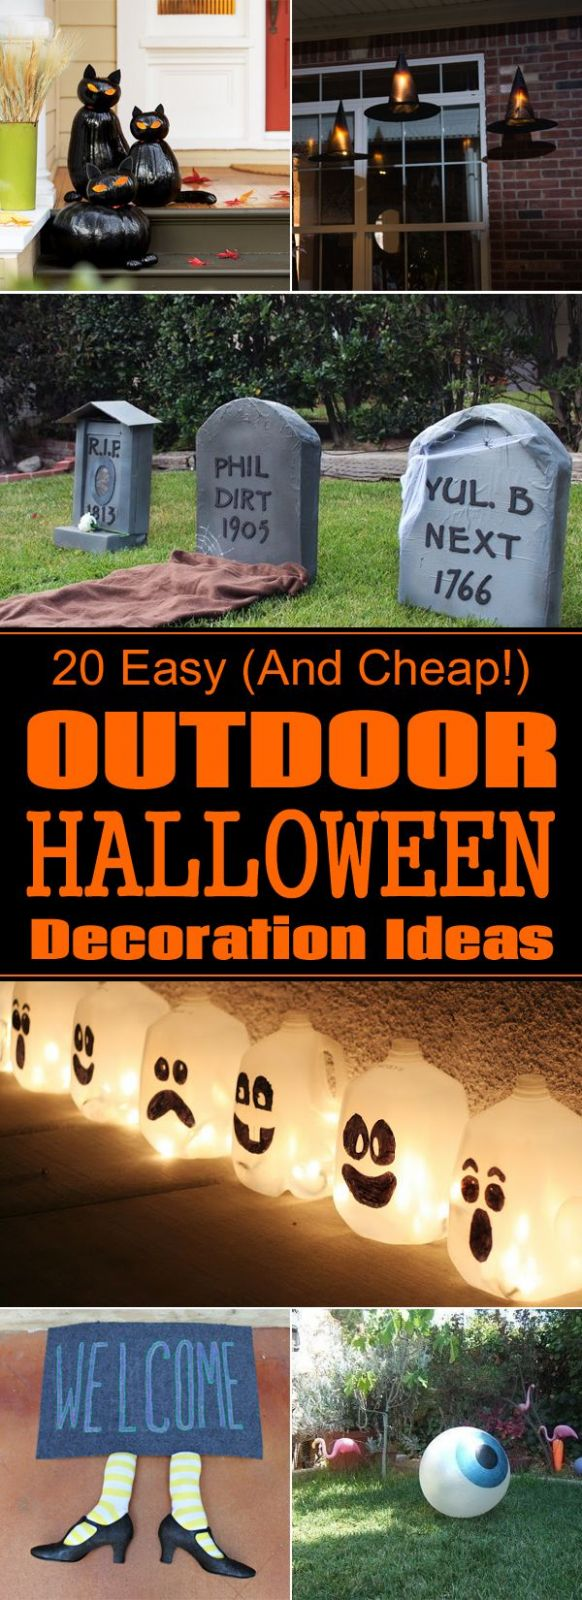 12 Easy (And Cheap!) DIY Outdoor Halloween Decoration Ideas ..